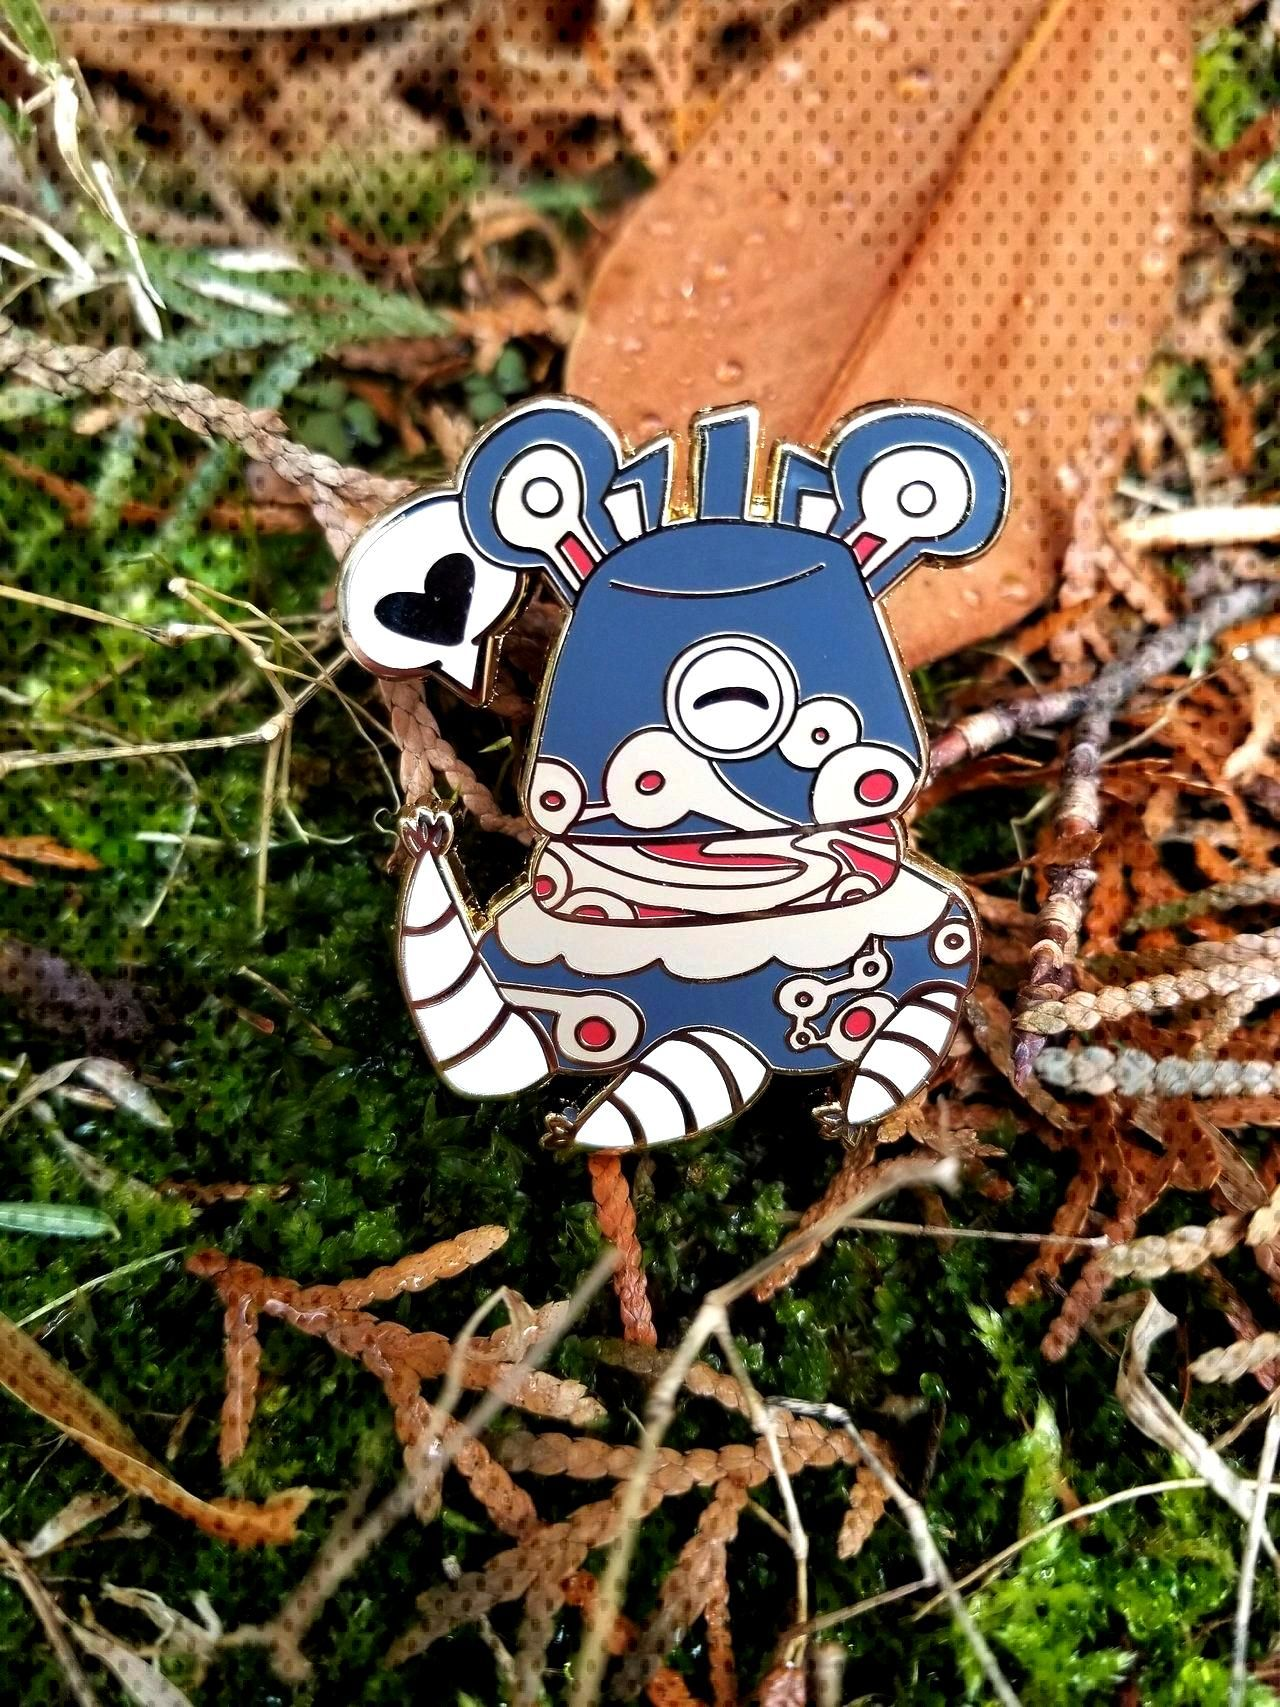 Chibi Breath of the Wild Guardian Pin made by thetallgrass -